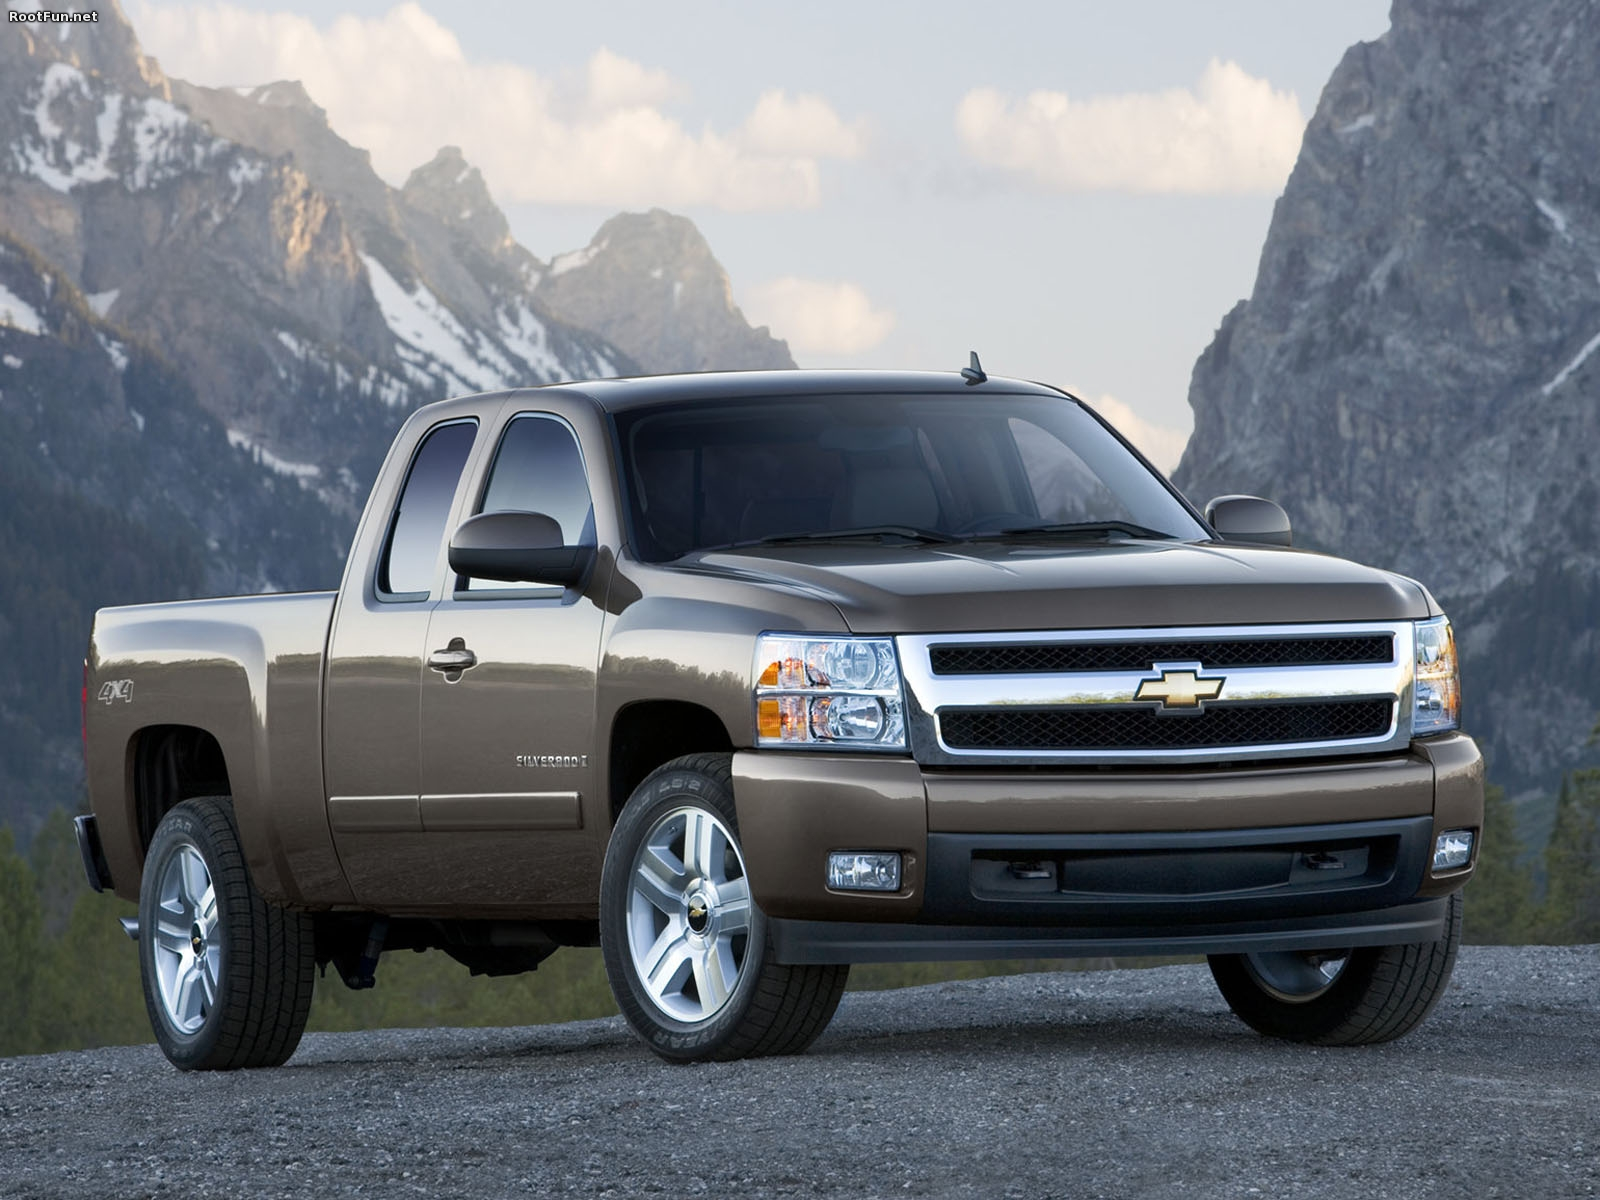 Chevy Silverado Wallpaper WallpaperSafari  Best Cool